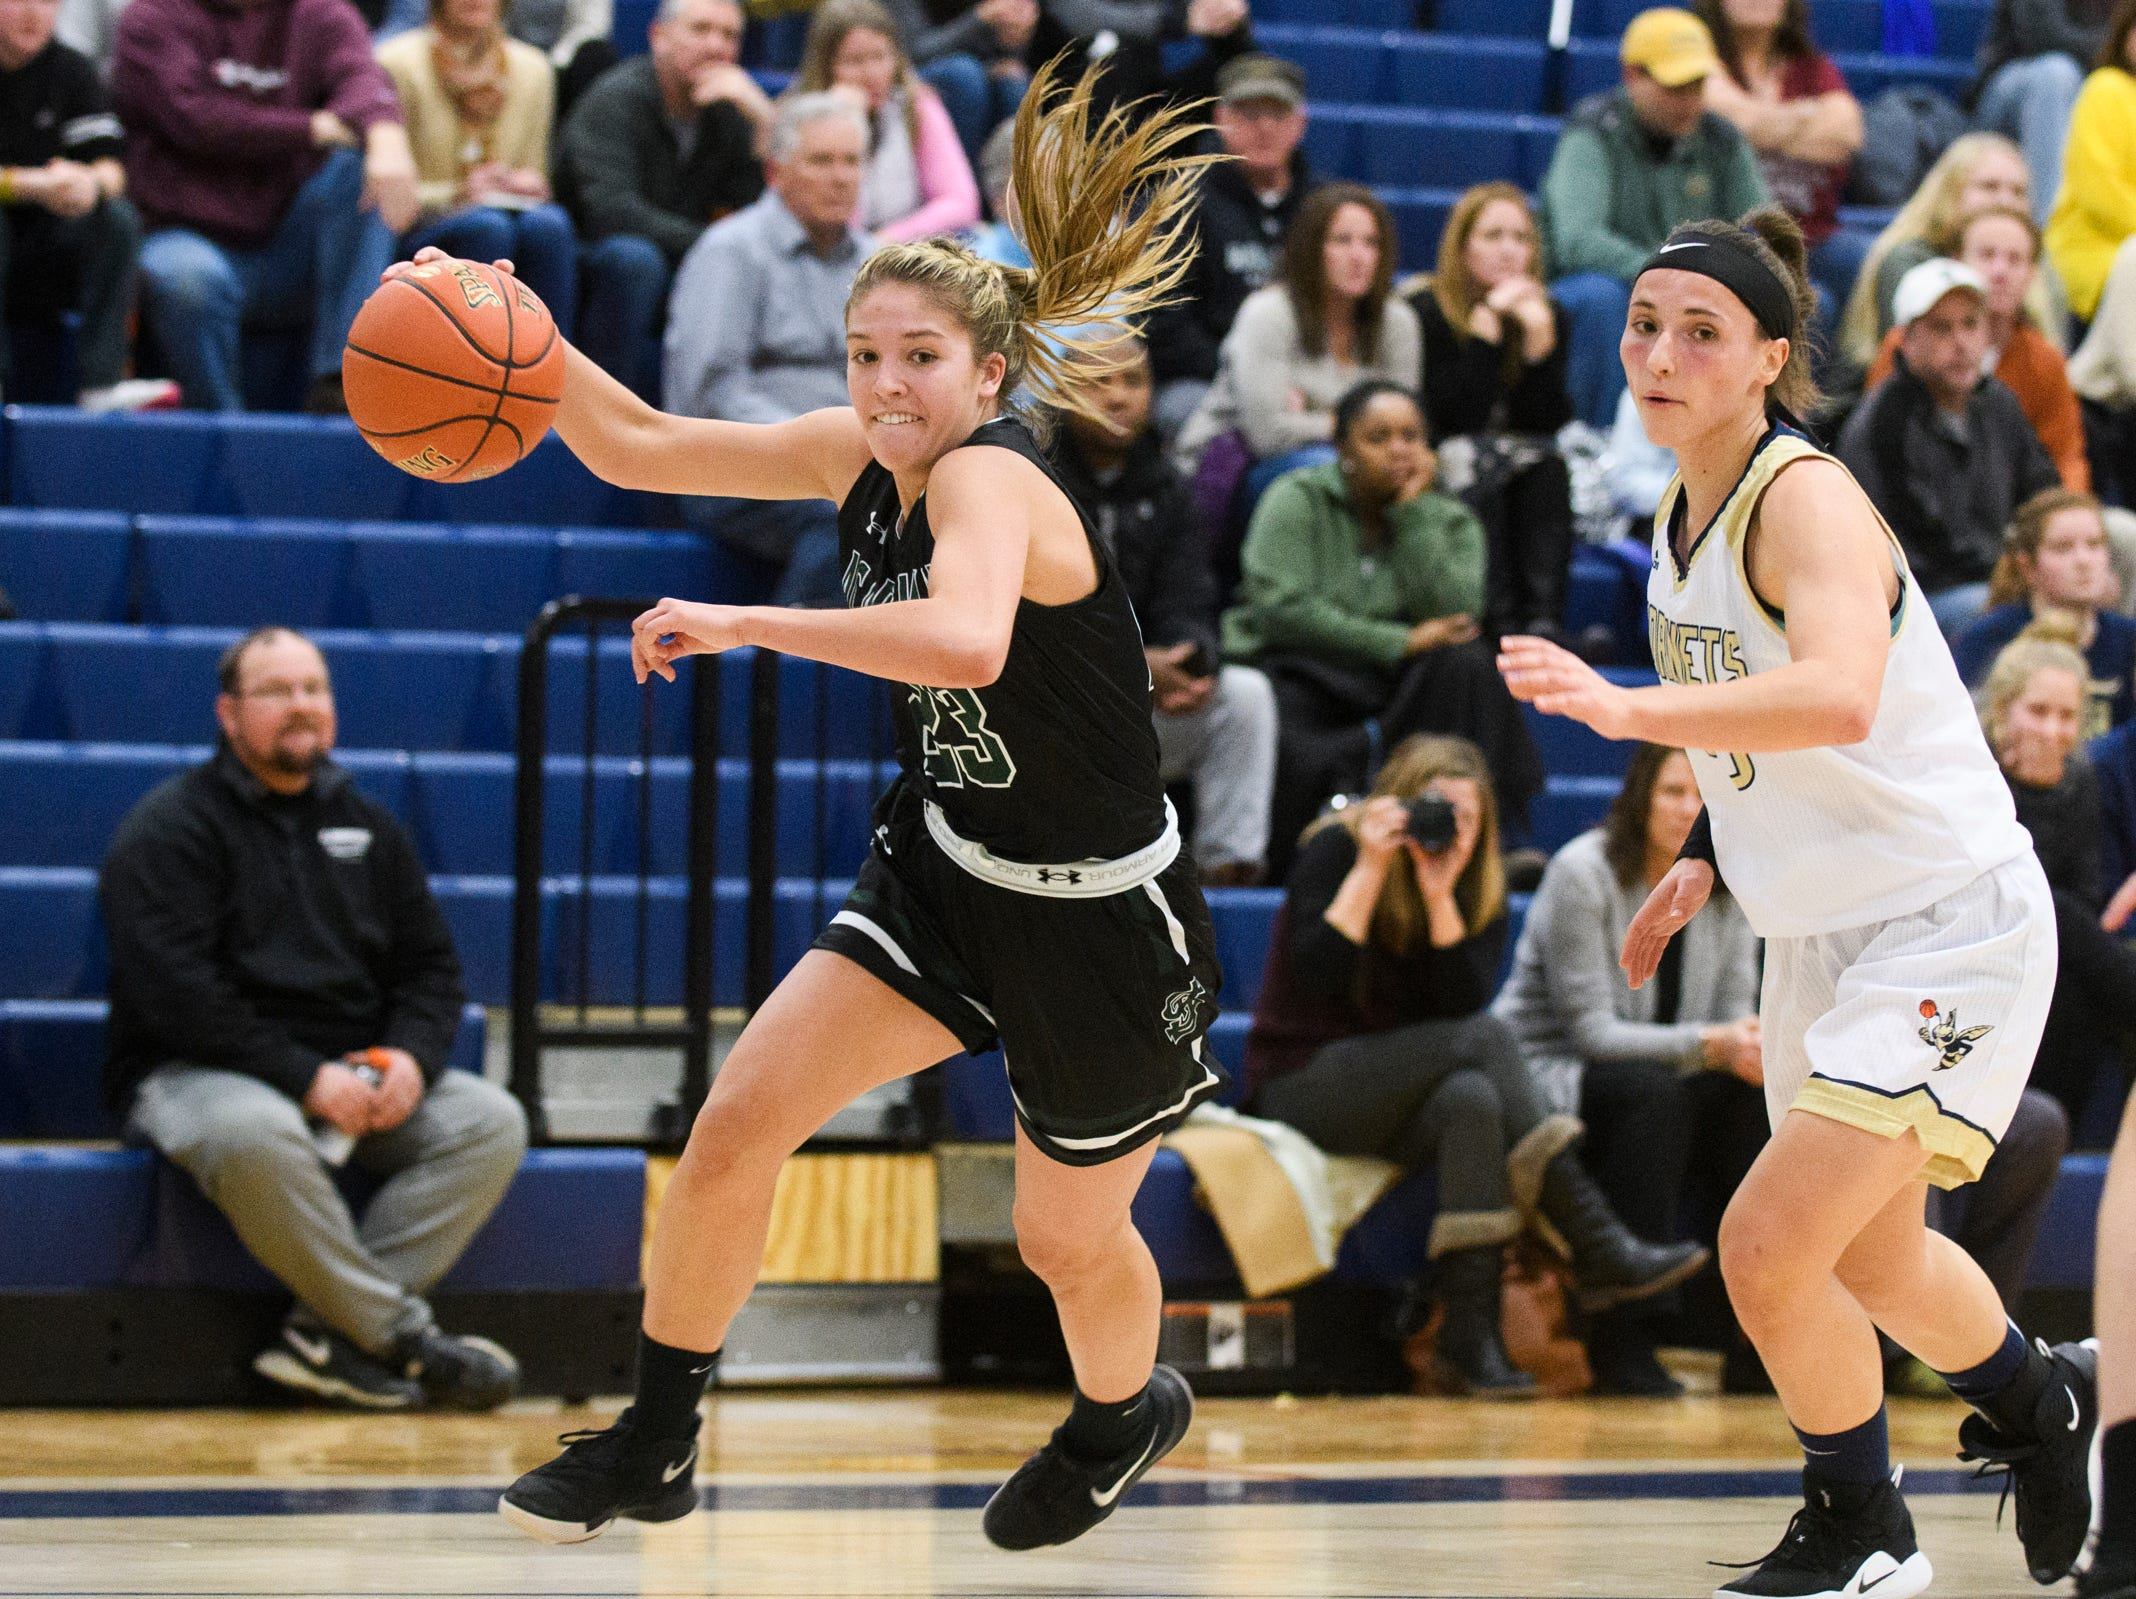 St. Johnsbury's Neva Bostic (23) drives to the hoop past Essex's Adrienne Noyes (10) during the girls basketball game between the St. Johnsbury Hilltoppers and the Essex Hornets at Essex High School on Thursday night January 17, 2019 in Essex.